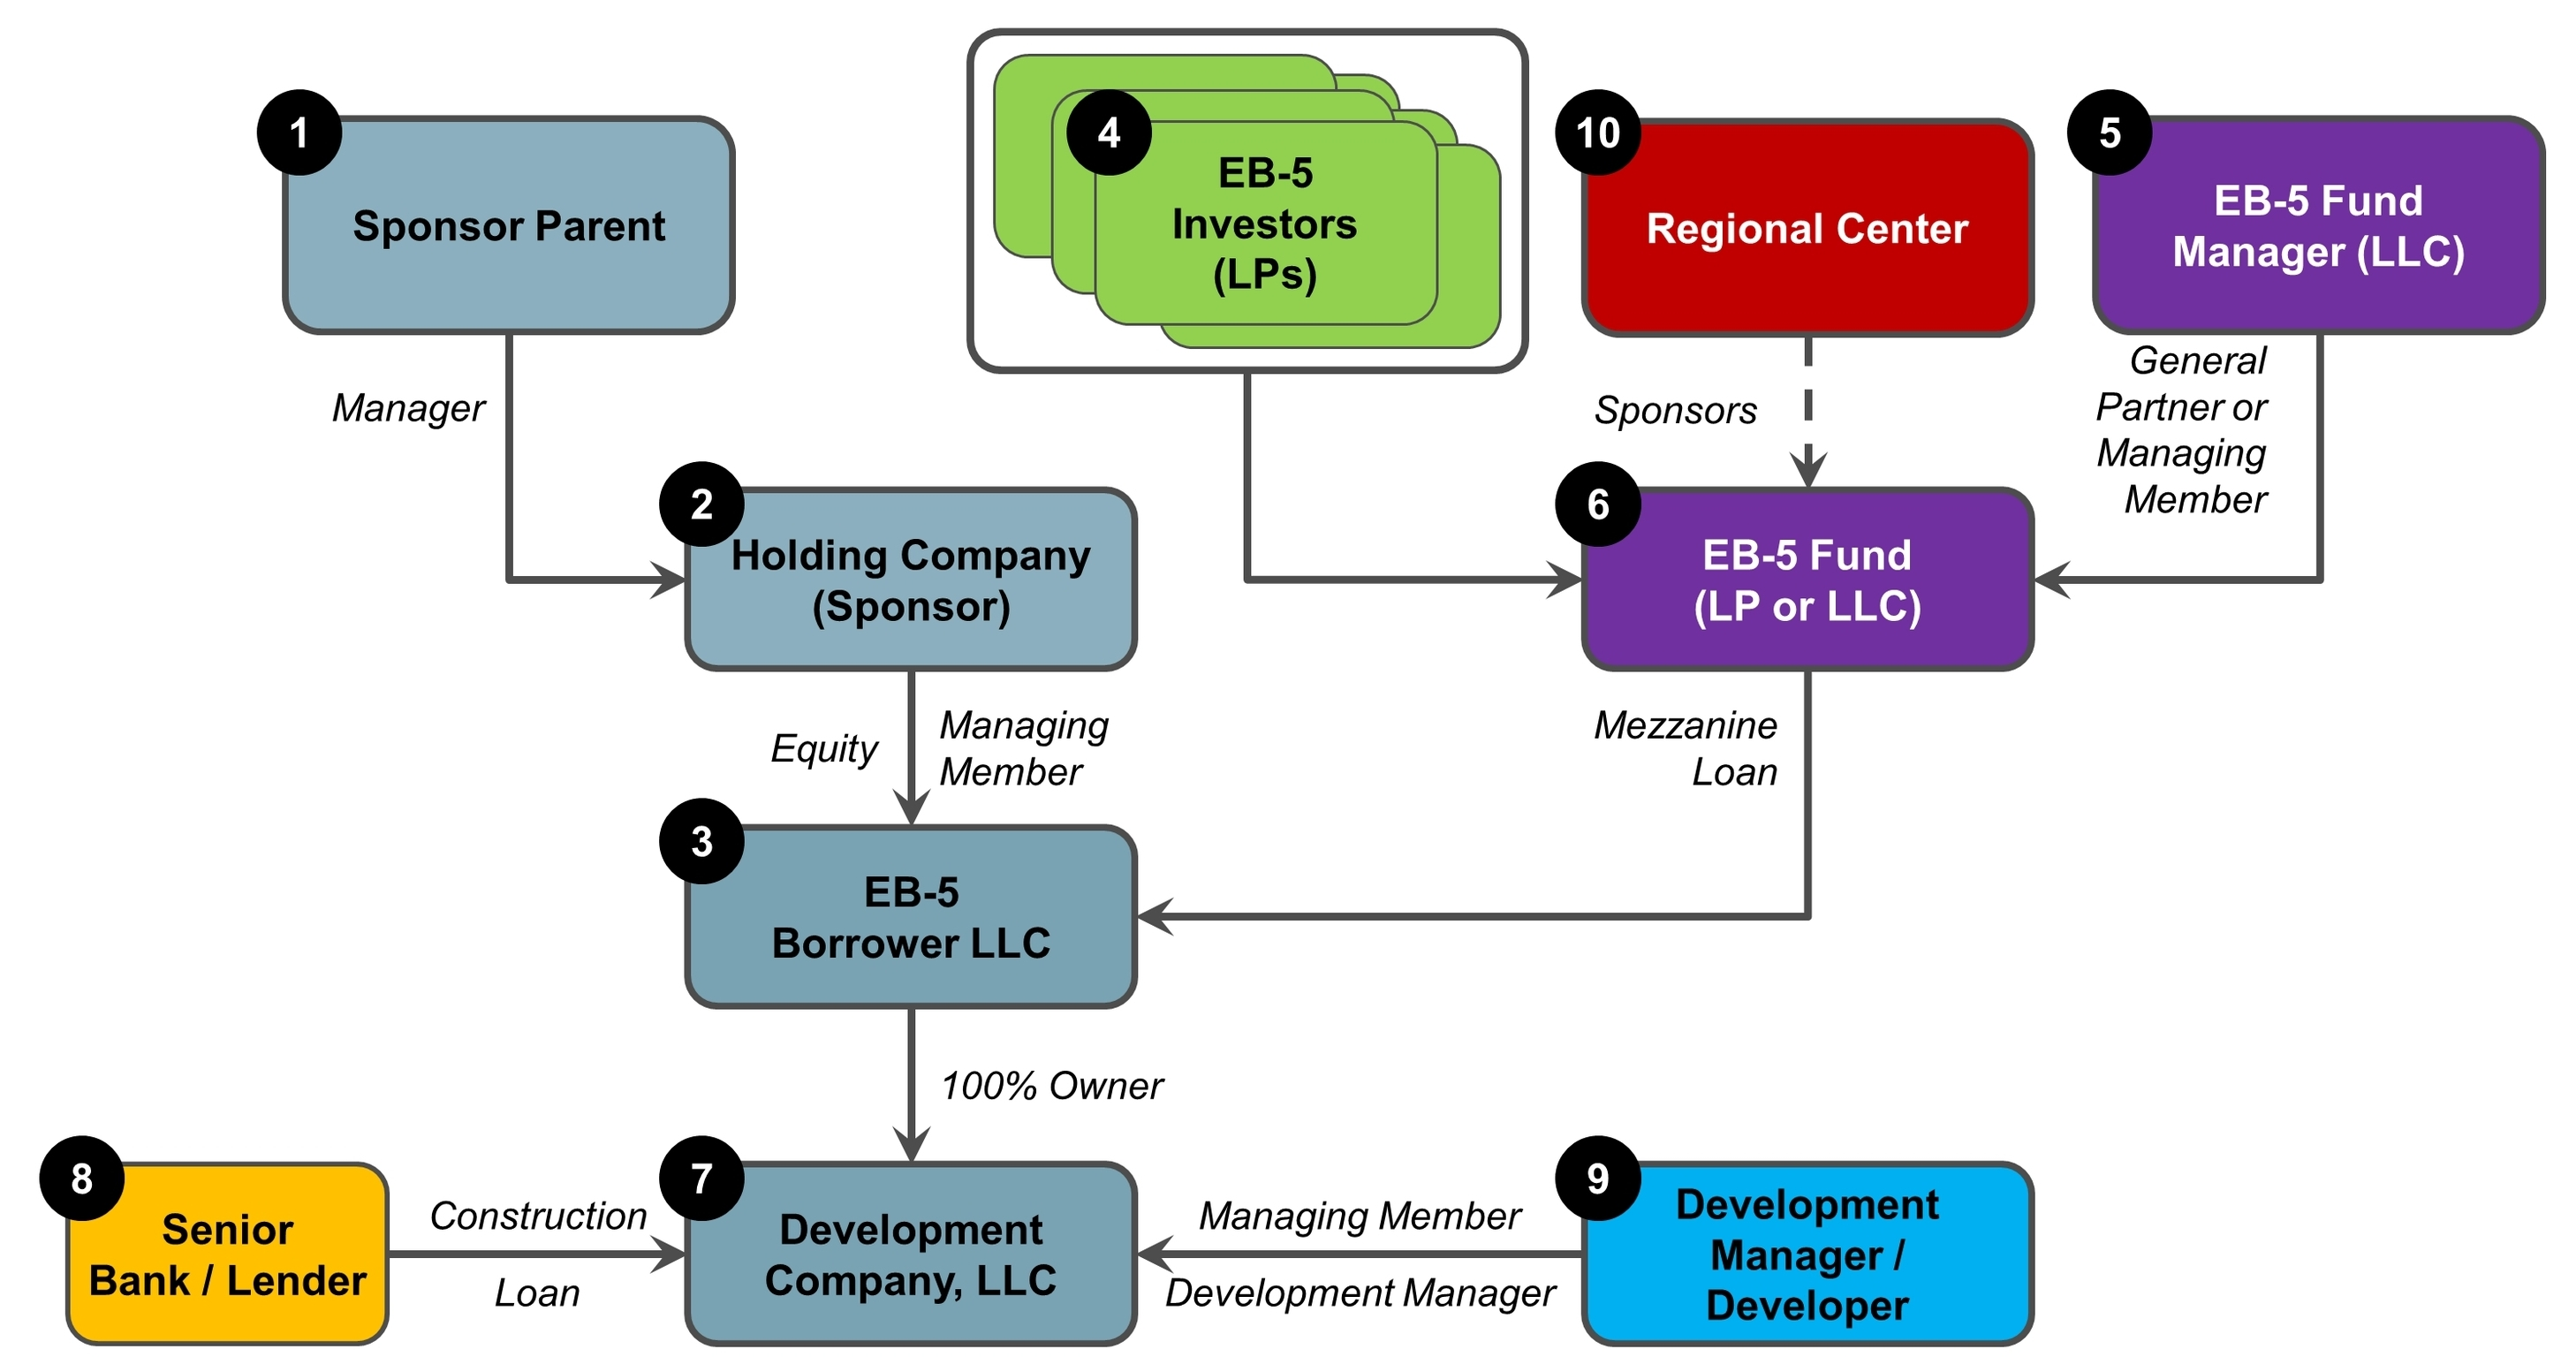 how to structure an eb 5 project